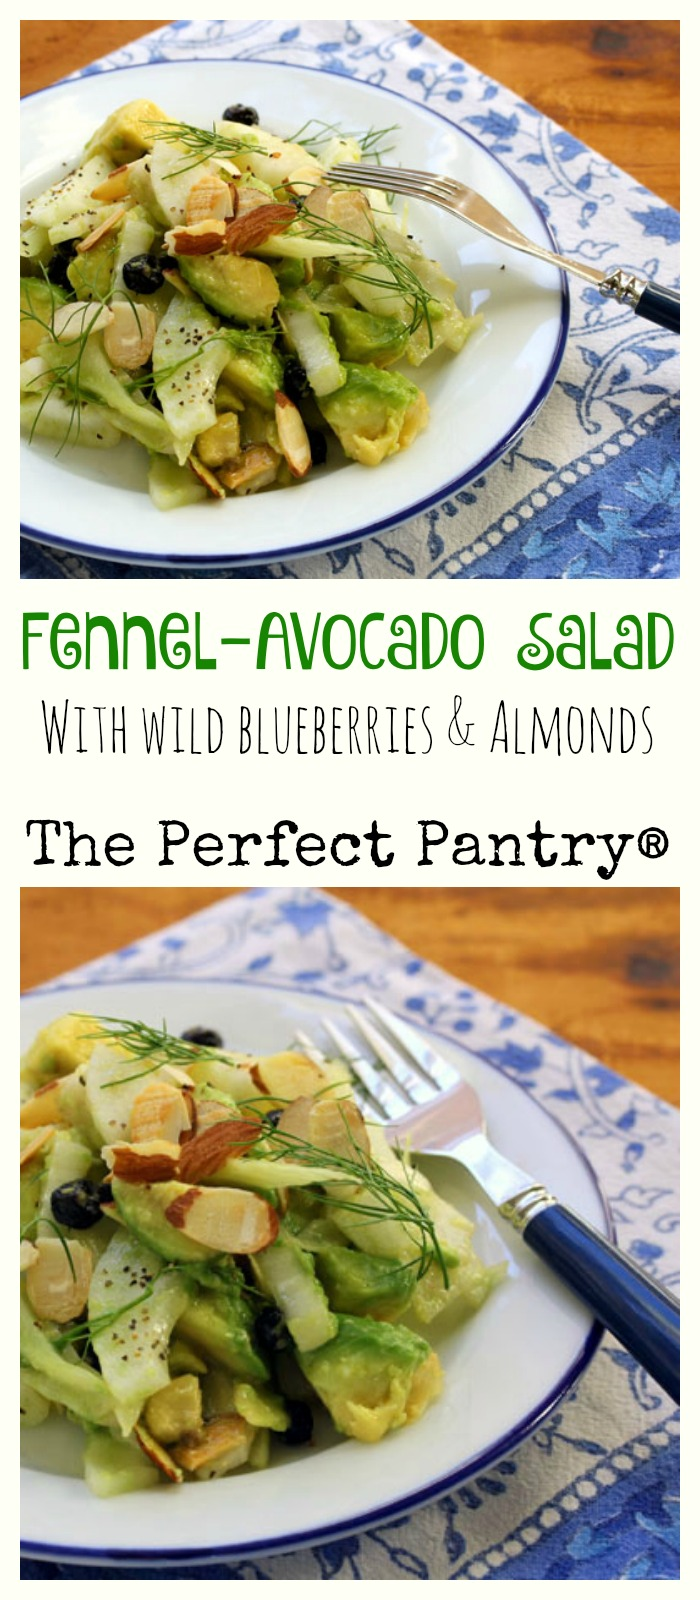 A wonderful winter salad of fennel, avocado, dried blueberries and toasted almonds, tied together with a white balsamic vinaigrette. #glutenfree #vegan [ThePerfectPantry.com]